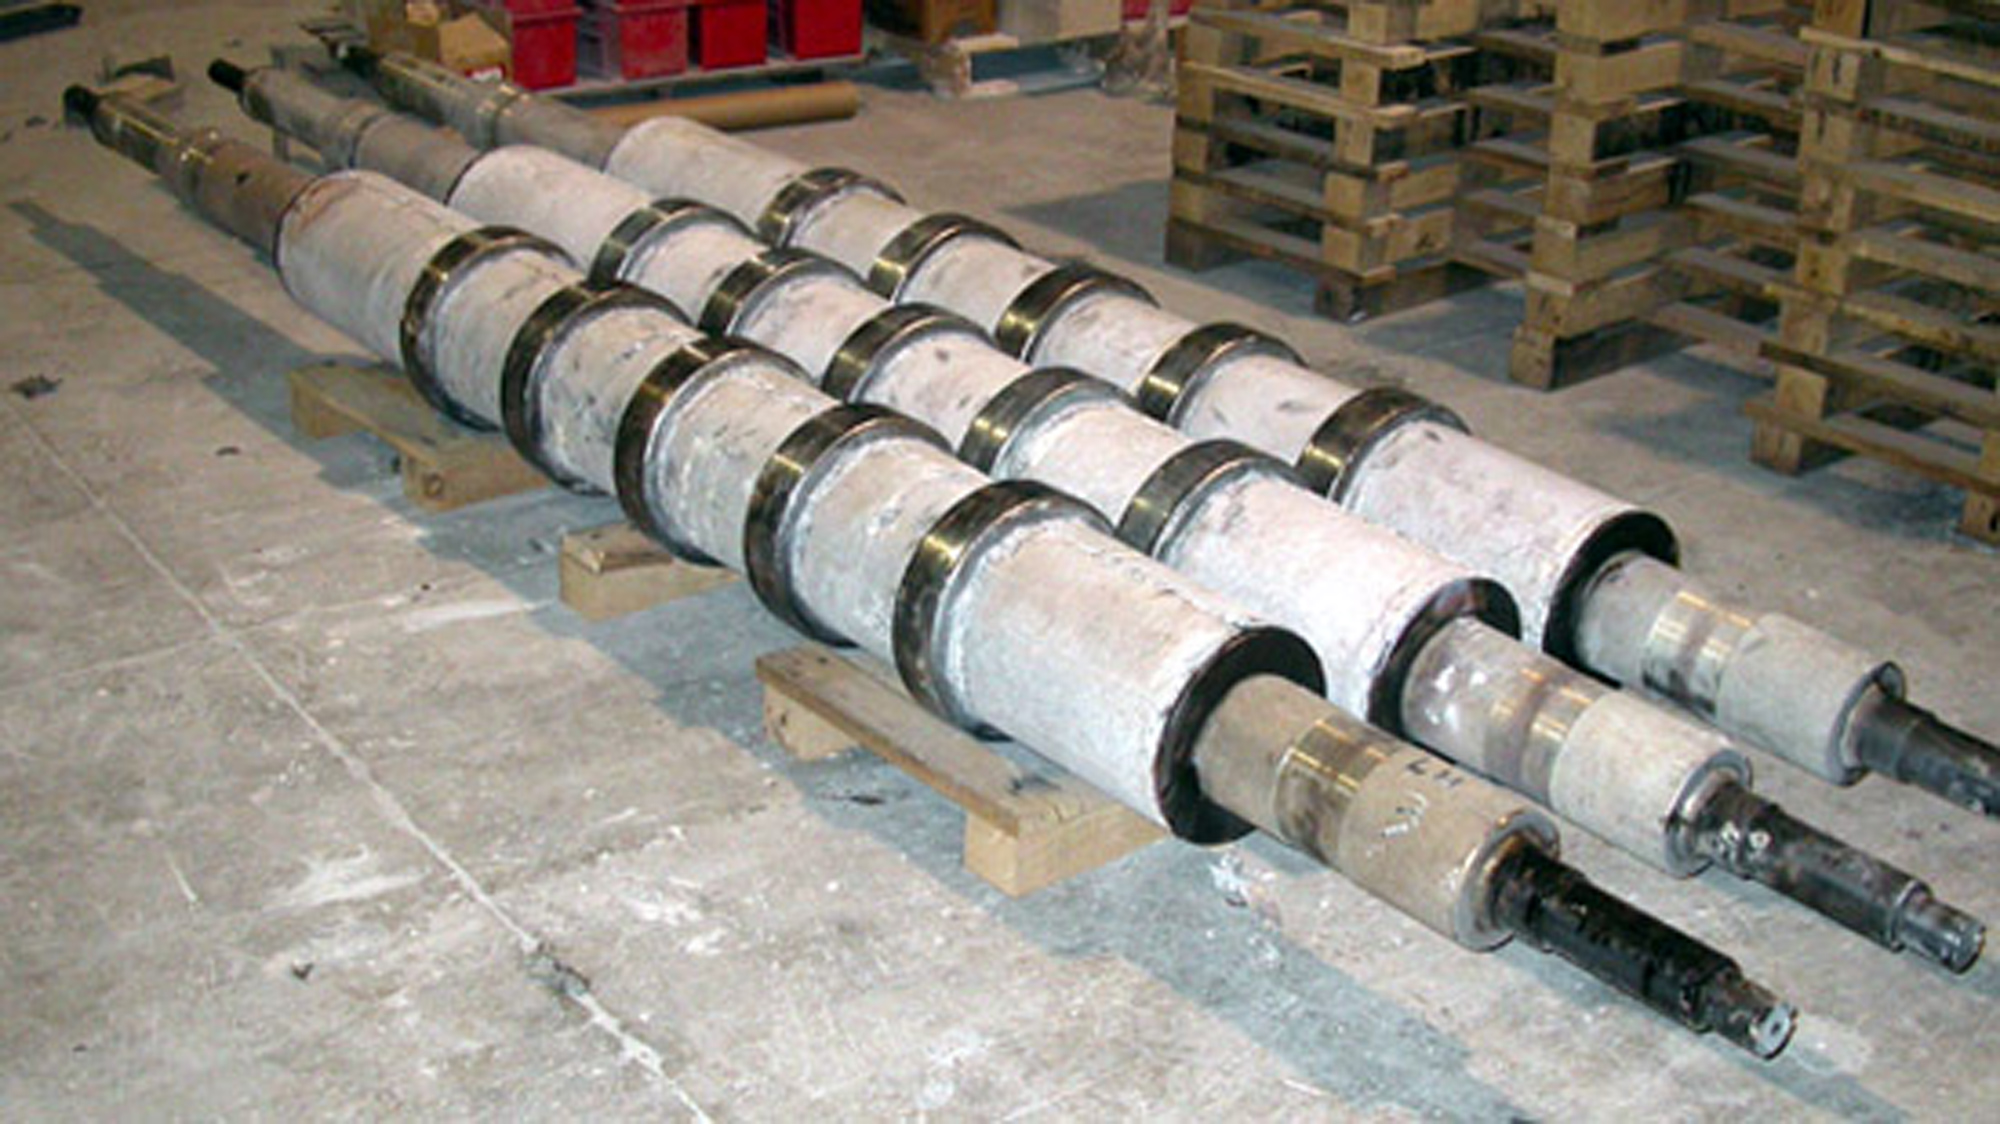 Water cooled furnace roll assemblies